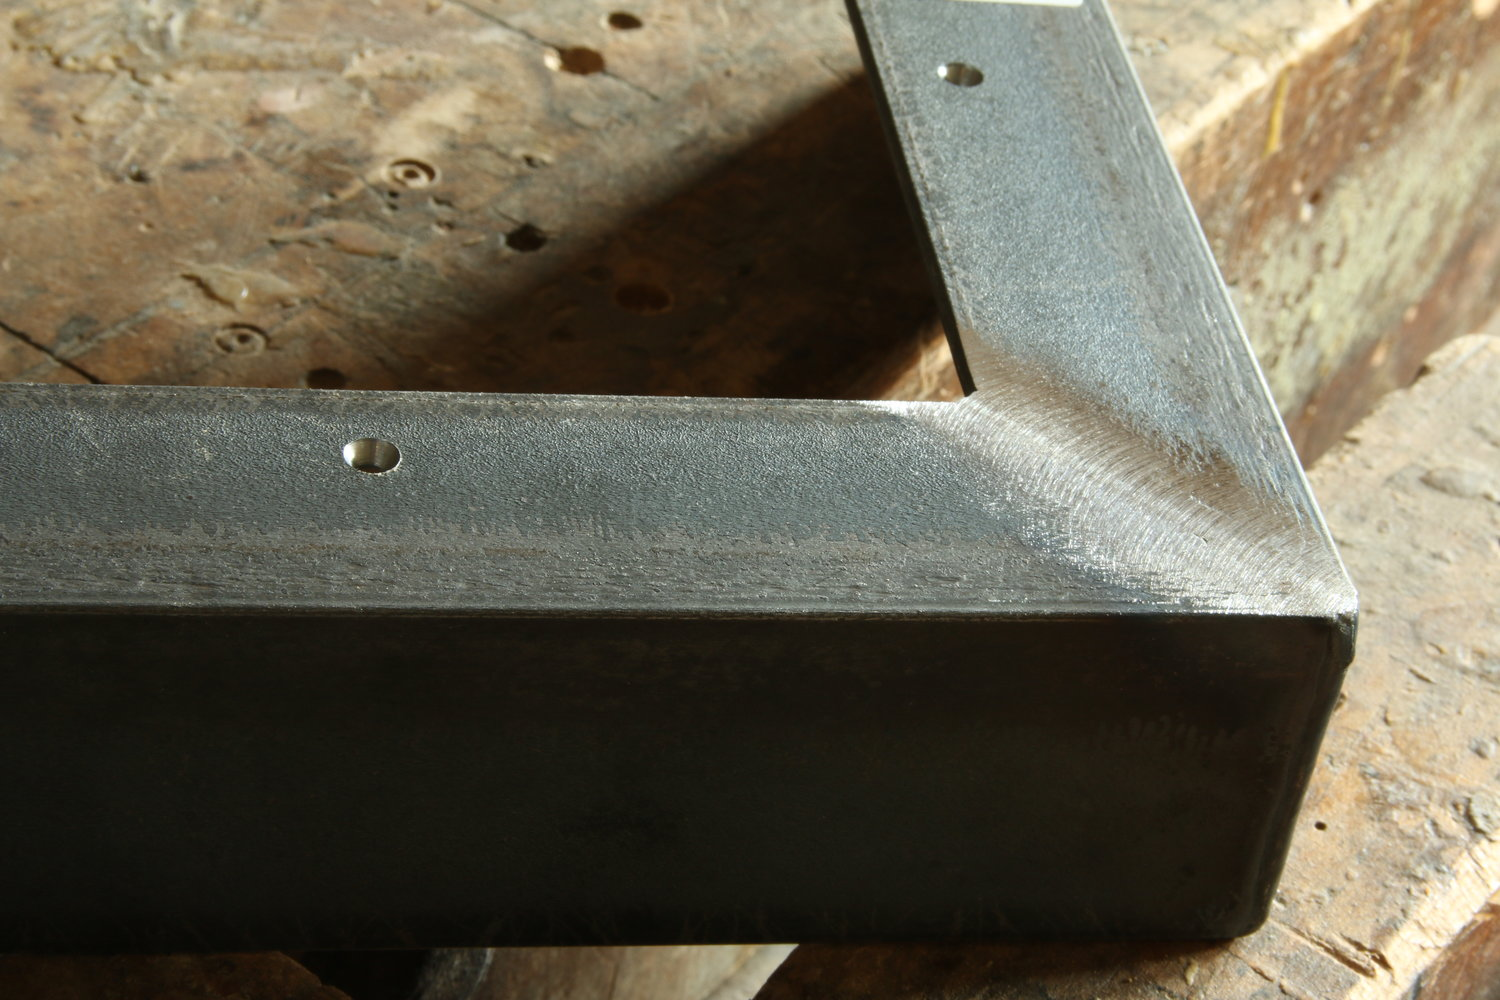 Smoothed seam butt joint weld on the frame face. The butt joint is created where two surfaces butt up against each other creating a single plane surface.